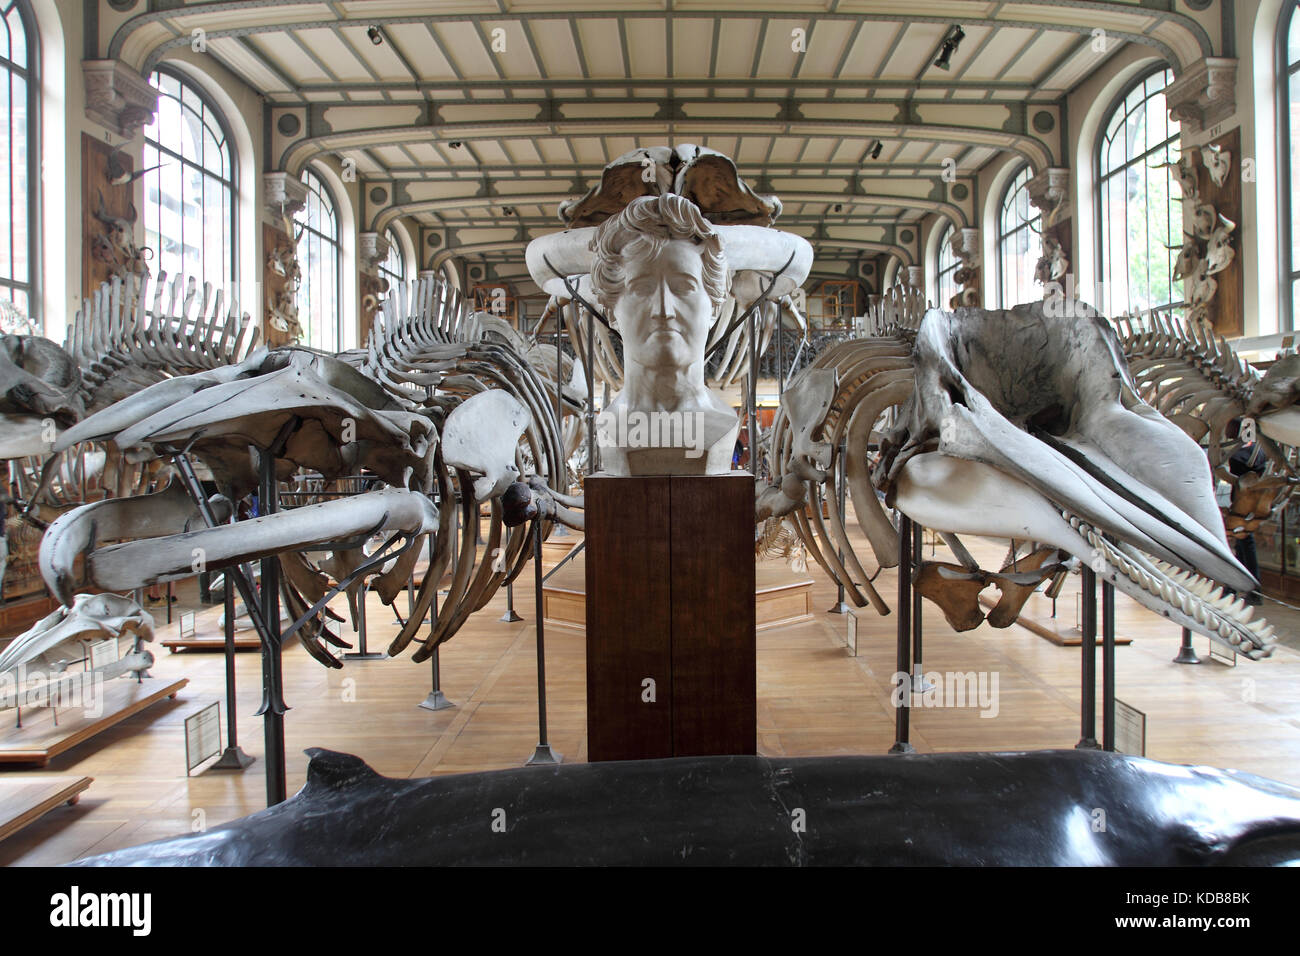 The Gallery of Paleontology and Comparative Anatomy, Paris. - Stock Image